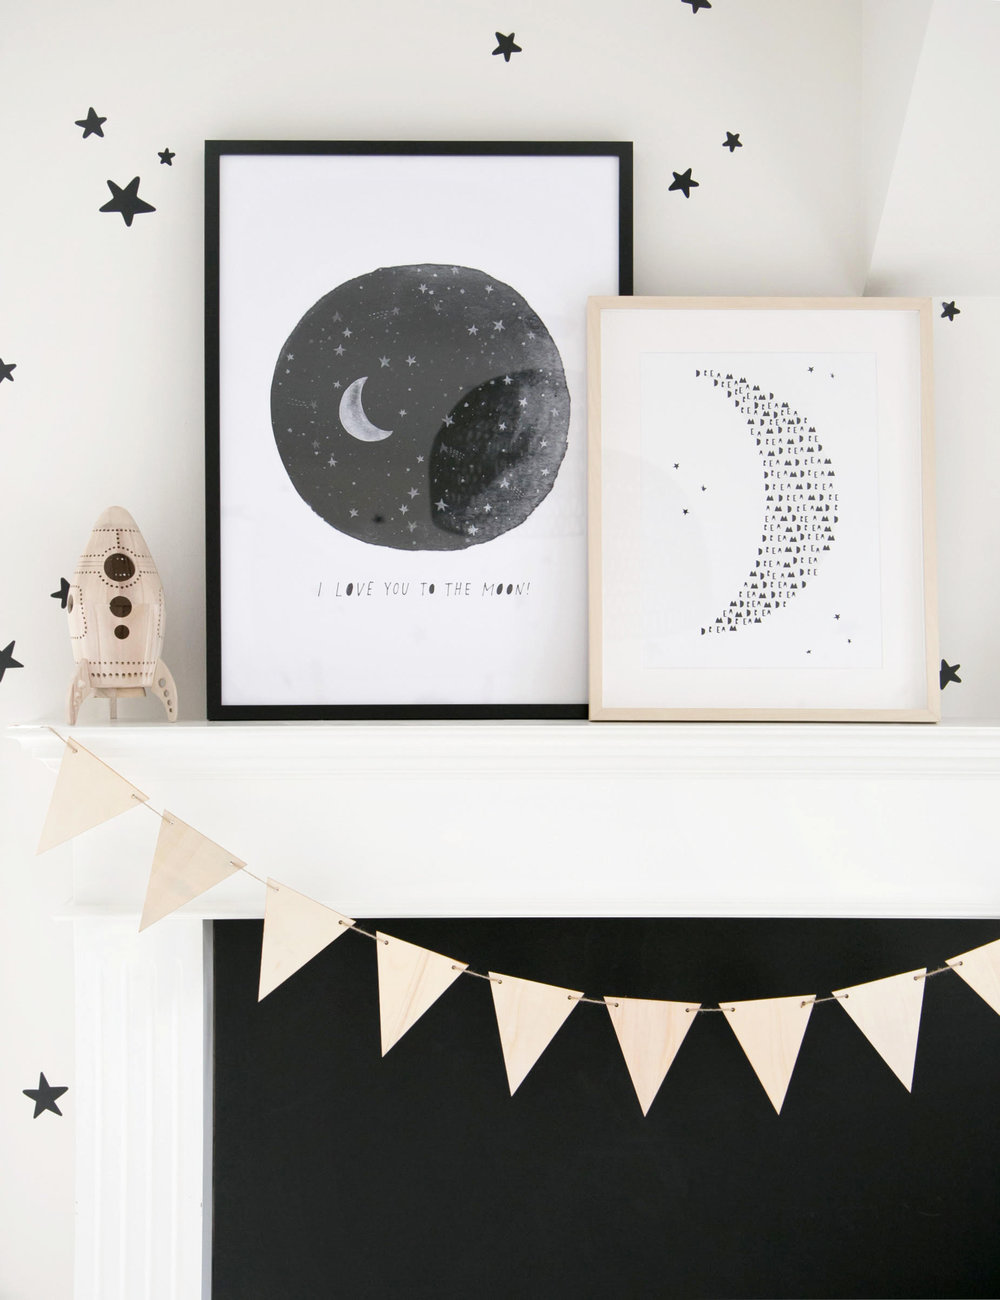 I love you to the moon kids art print on fireplace mantel